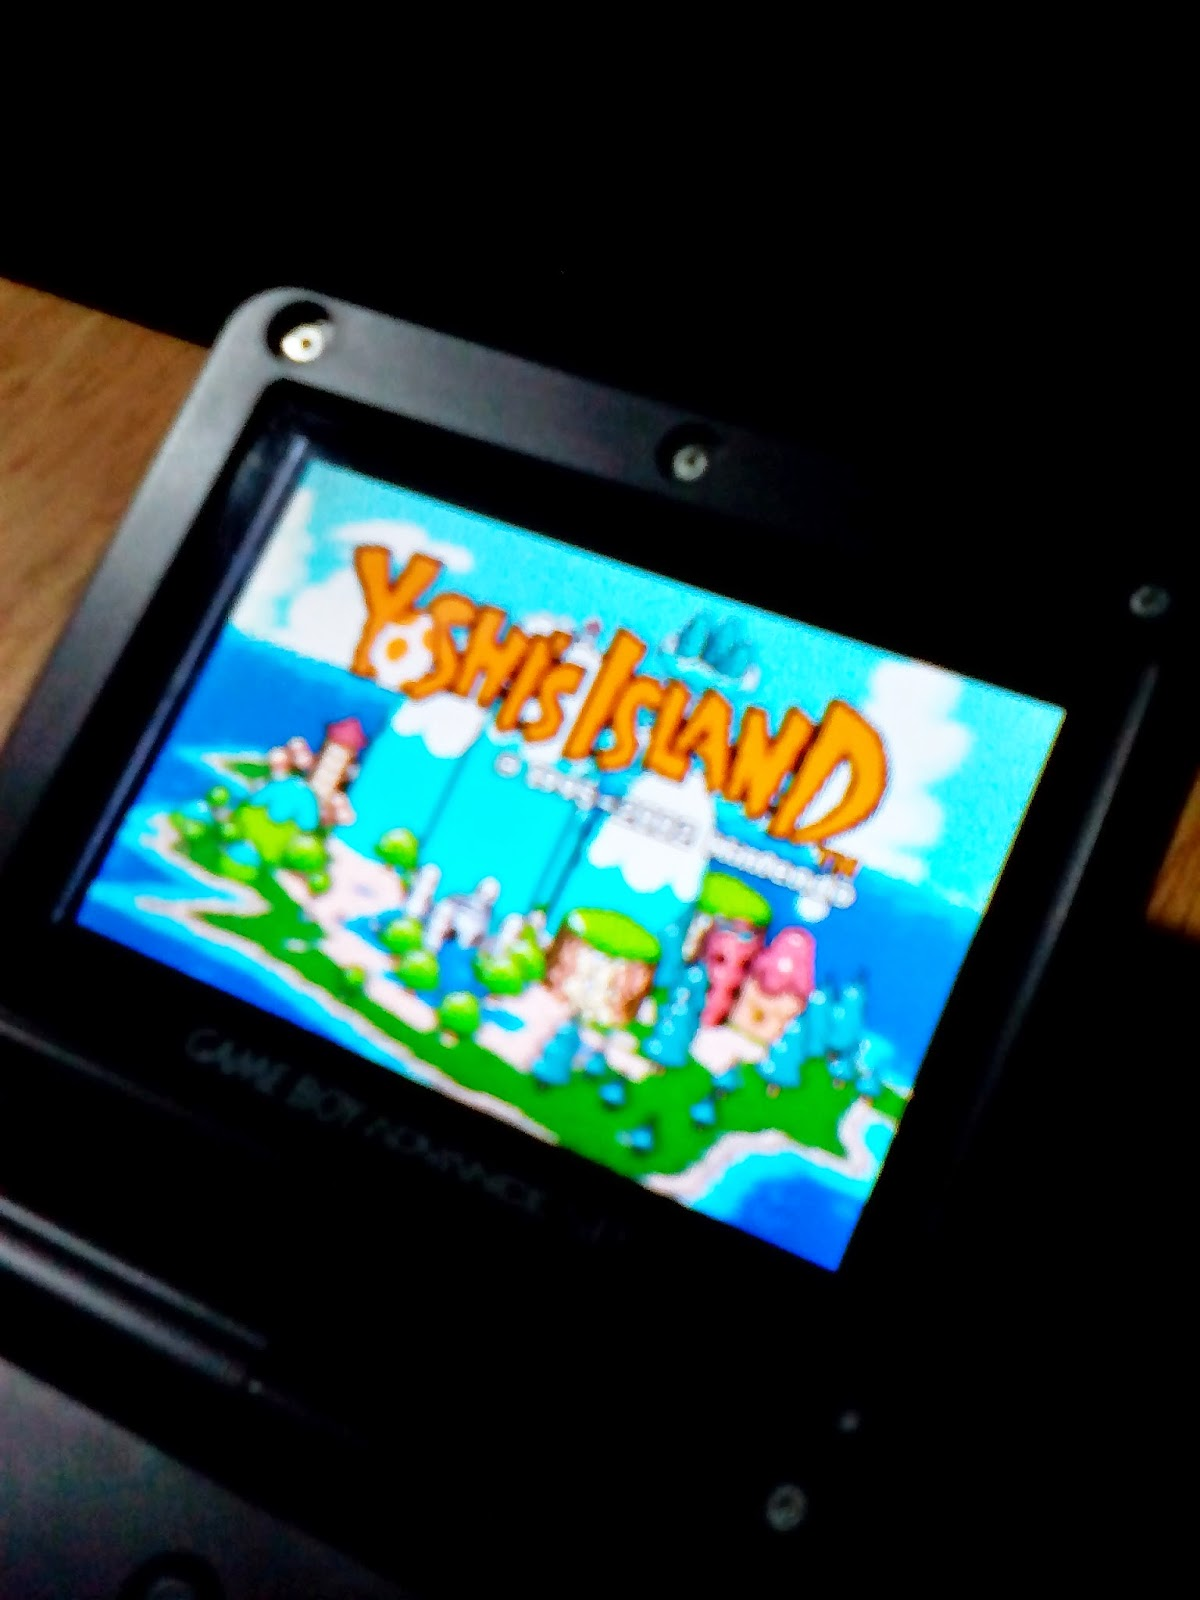 Yoshi's Island on the GBA AGS-101